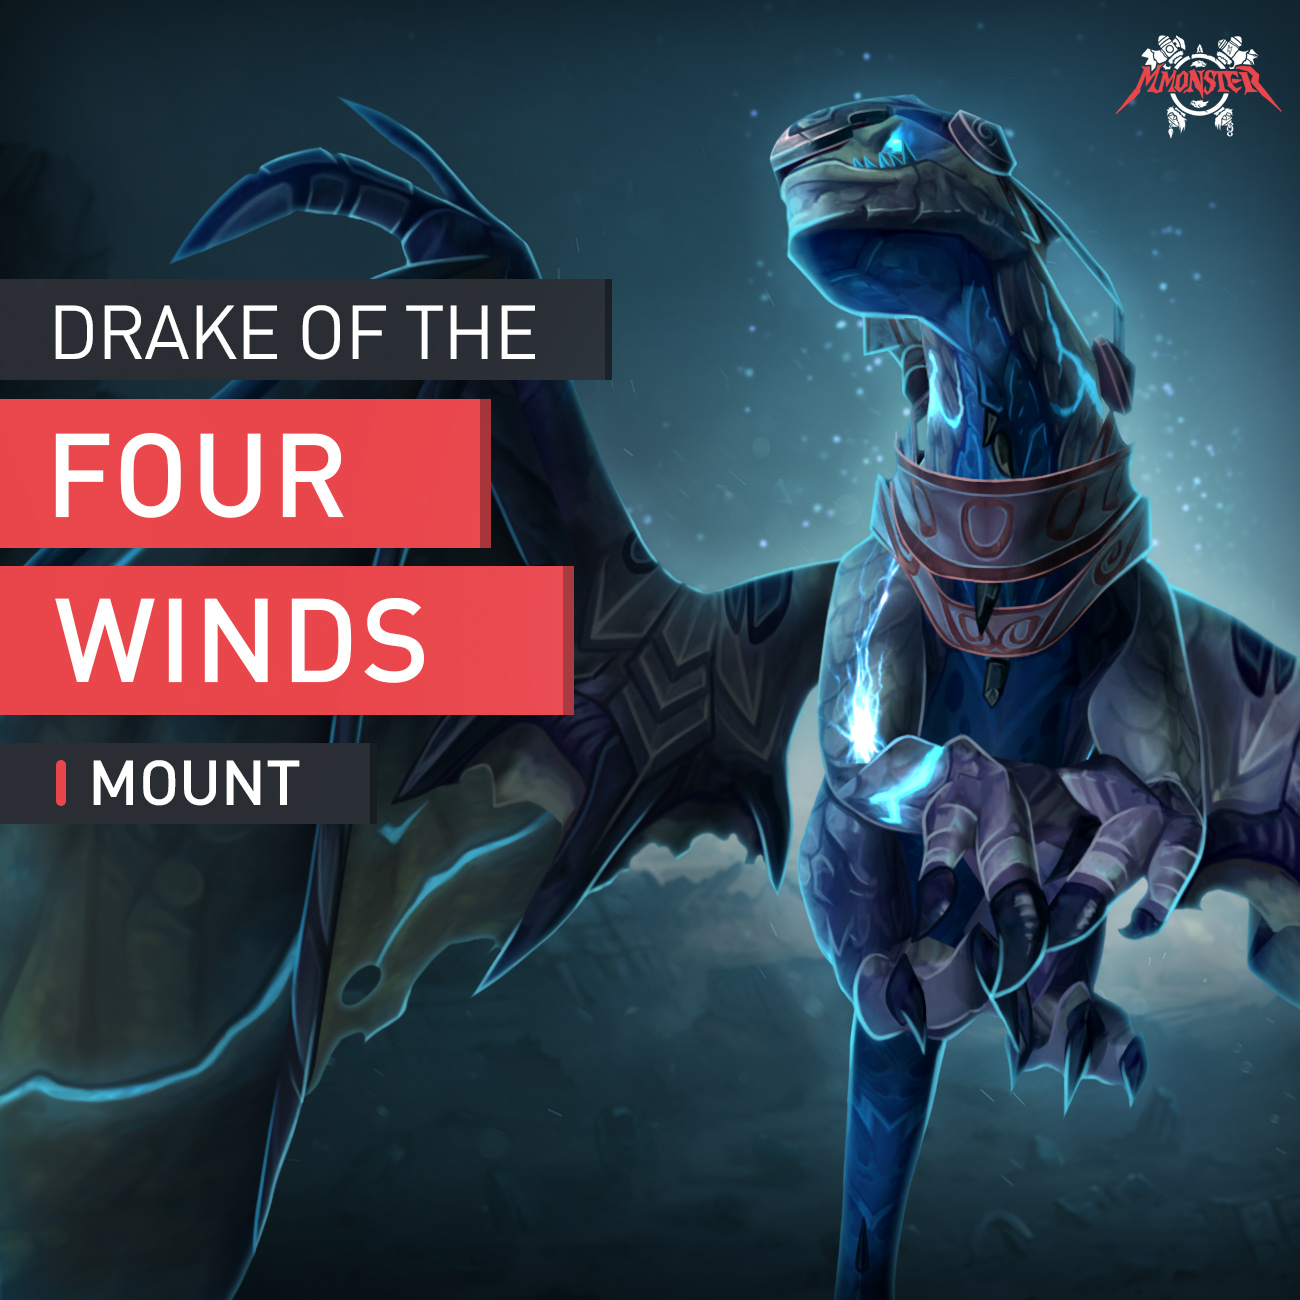 Drake of the Four Winds Mount